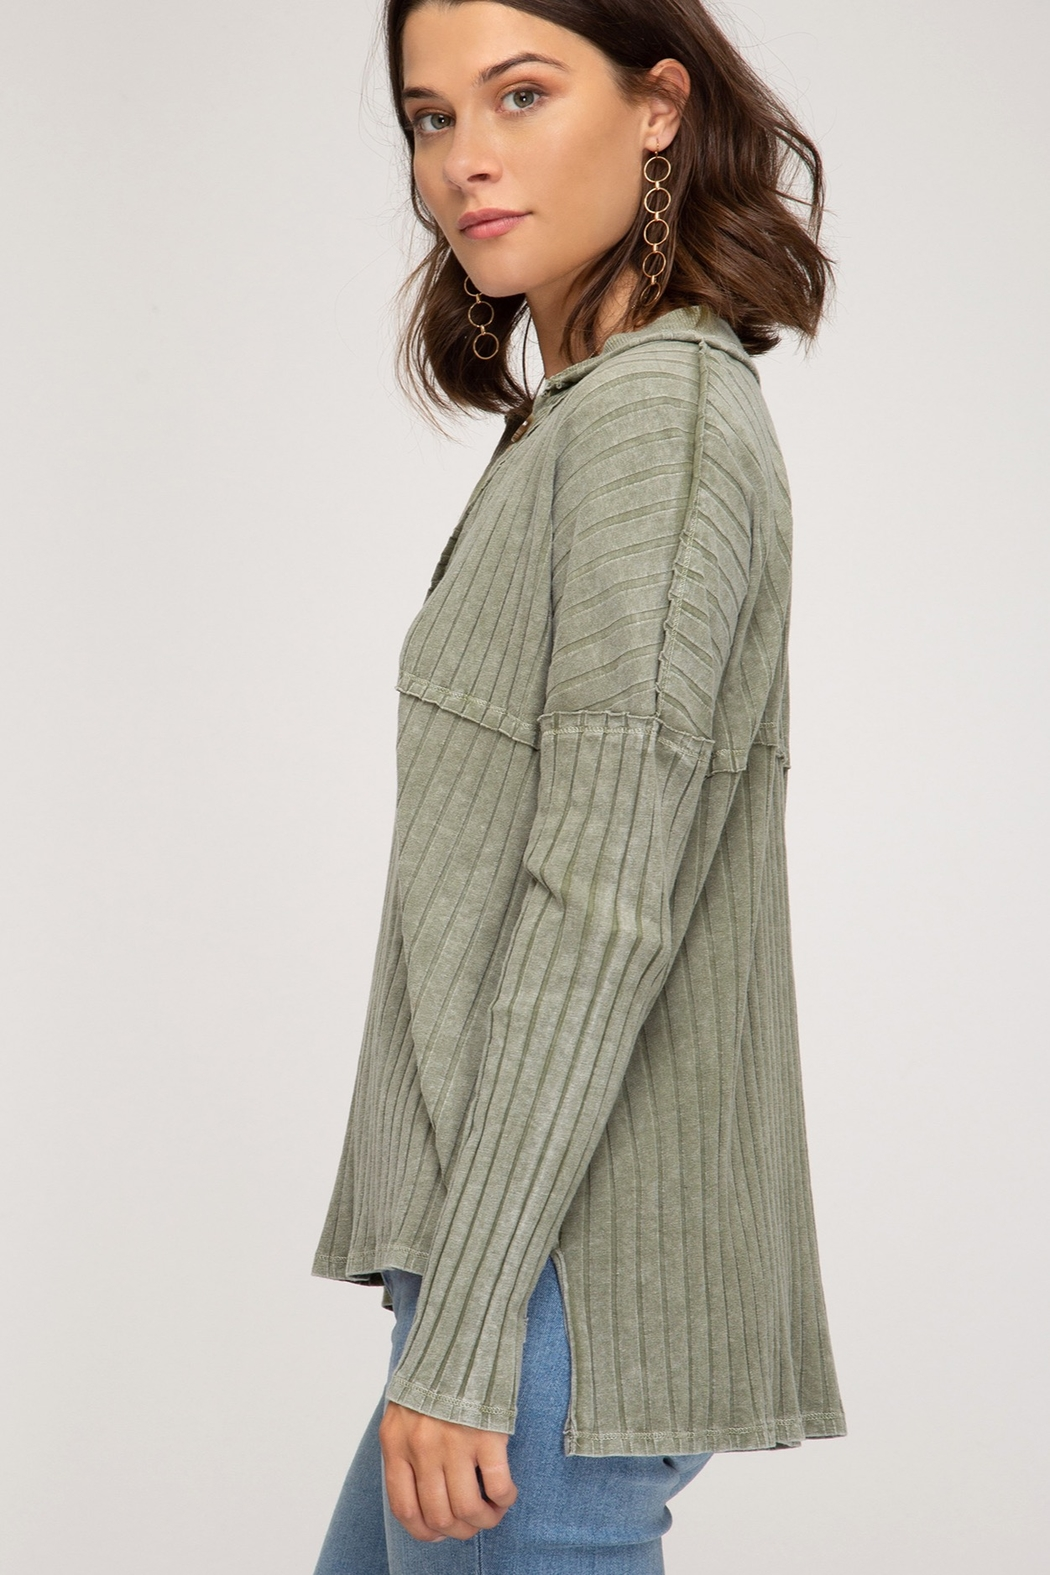 She and Sky LONG SLEEVE RIB KNIT TOP WITH FRONT BUTTON PLACKET DETAIL - Front Full Image